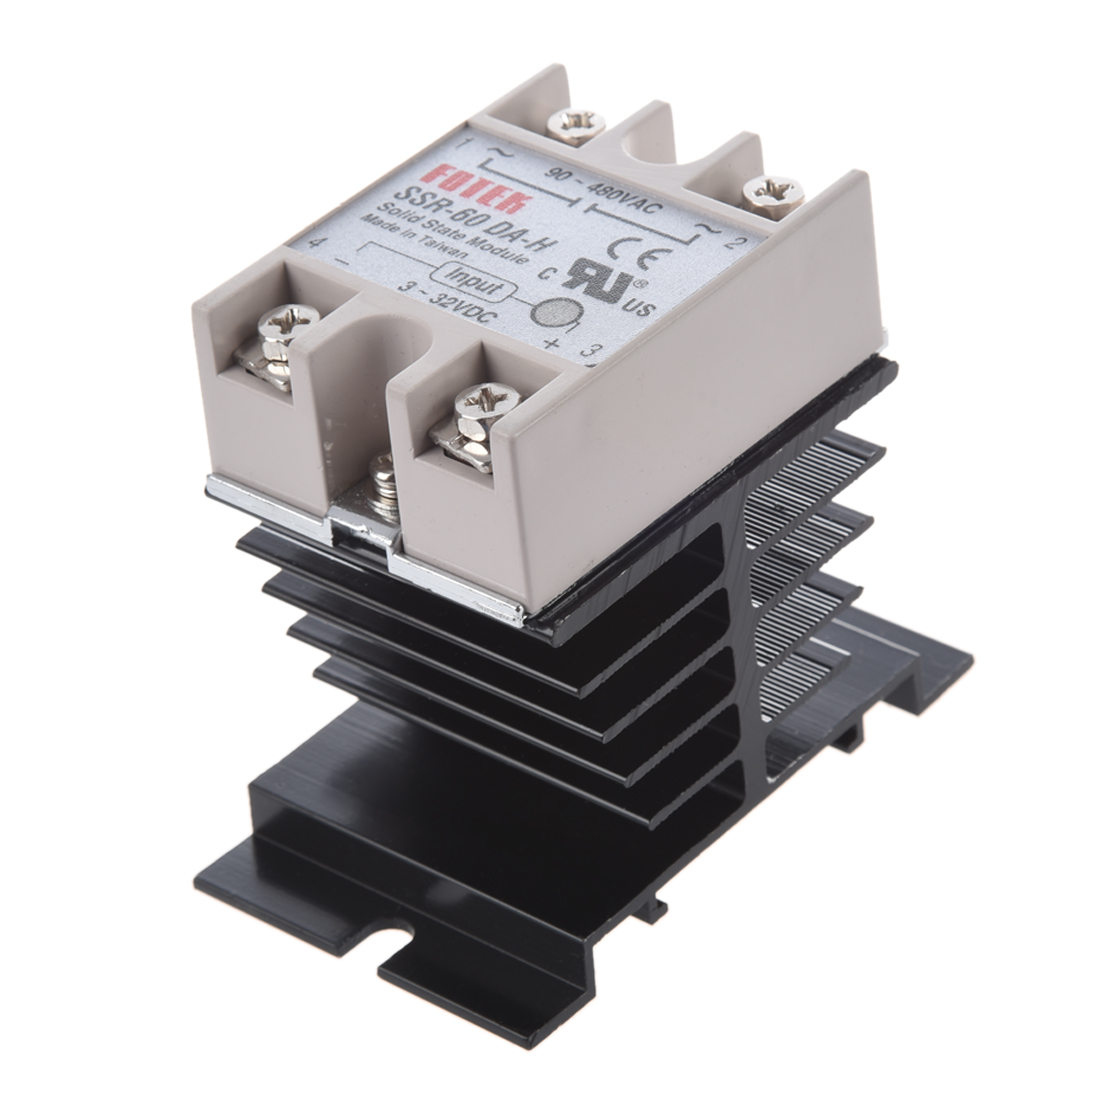 DC to AC SSR-60DA-H AC 90--480V 60A Single Phase Solid State Relay + Heat Sink dc ac single phase ssr solid state relay 120a 3 32v dc 24 480v ac